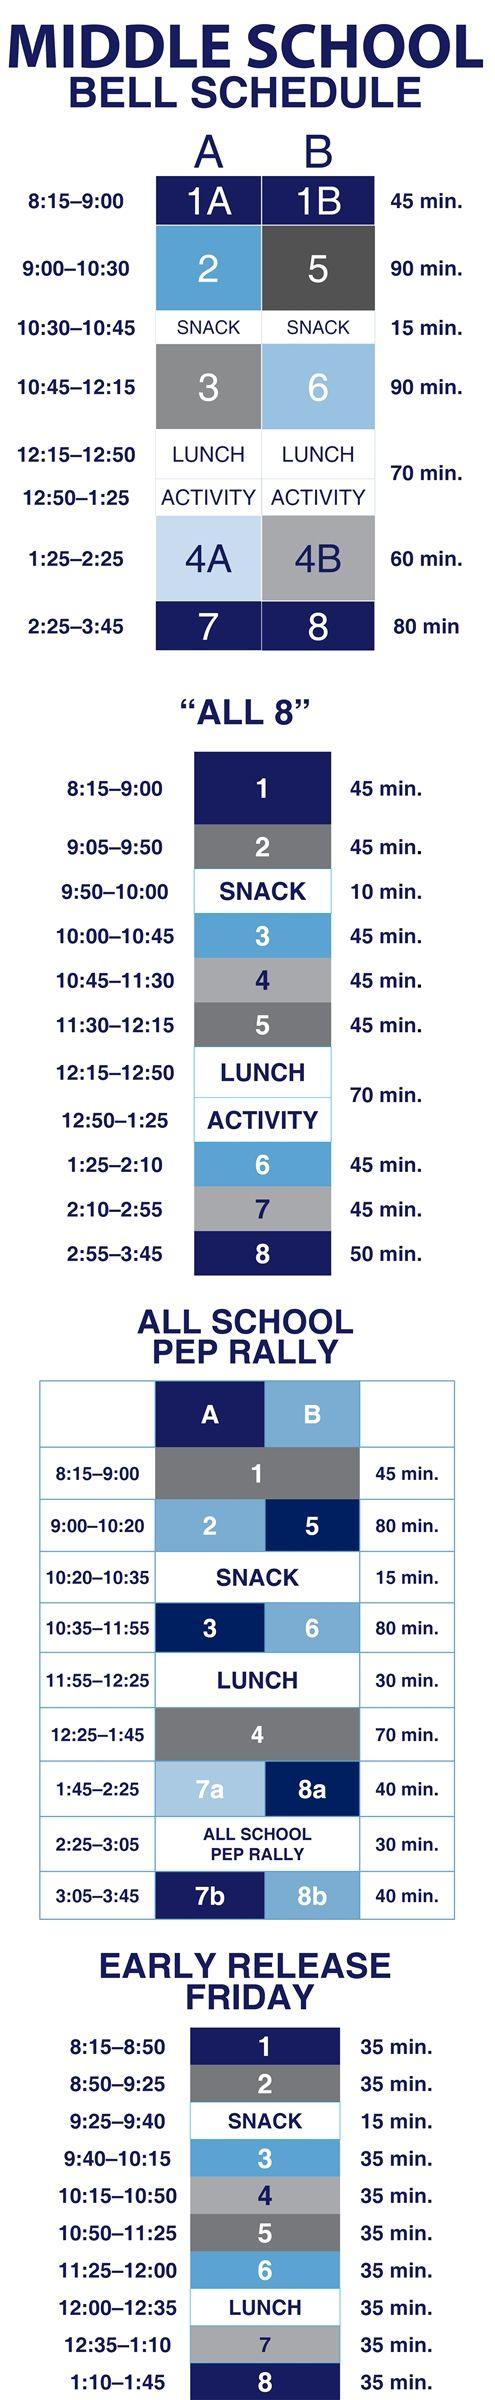 2018-2019 Middle School Bell Schedule